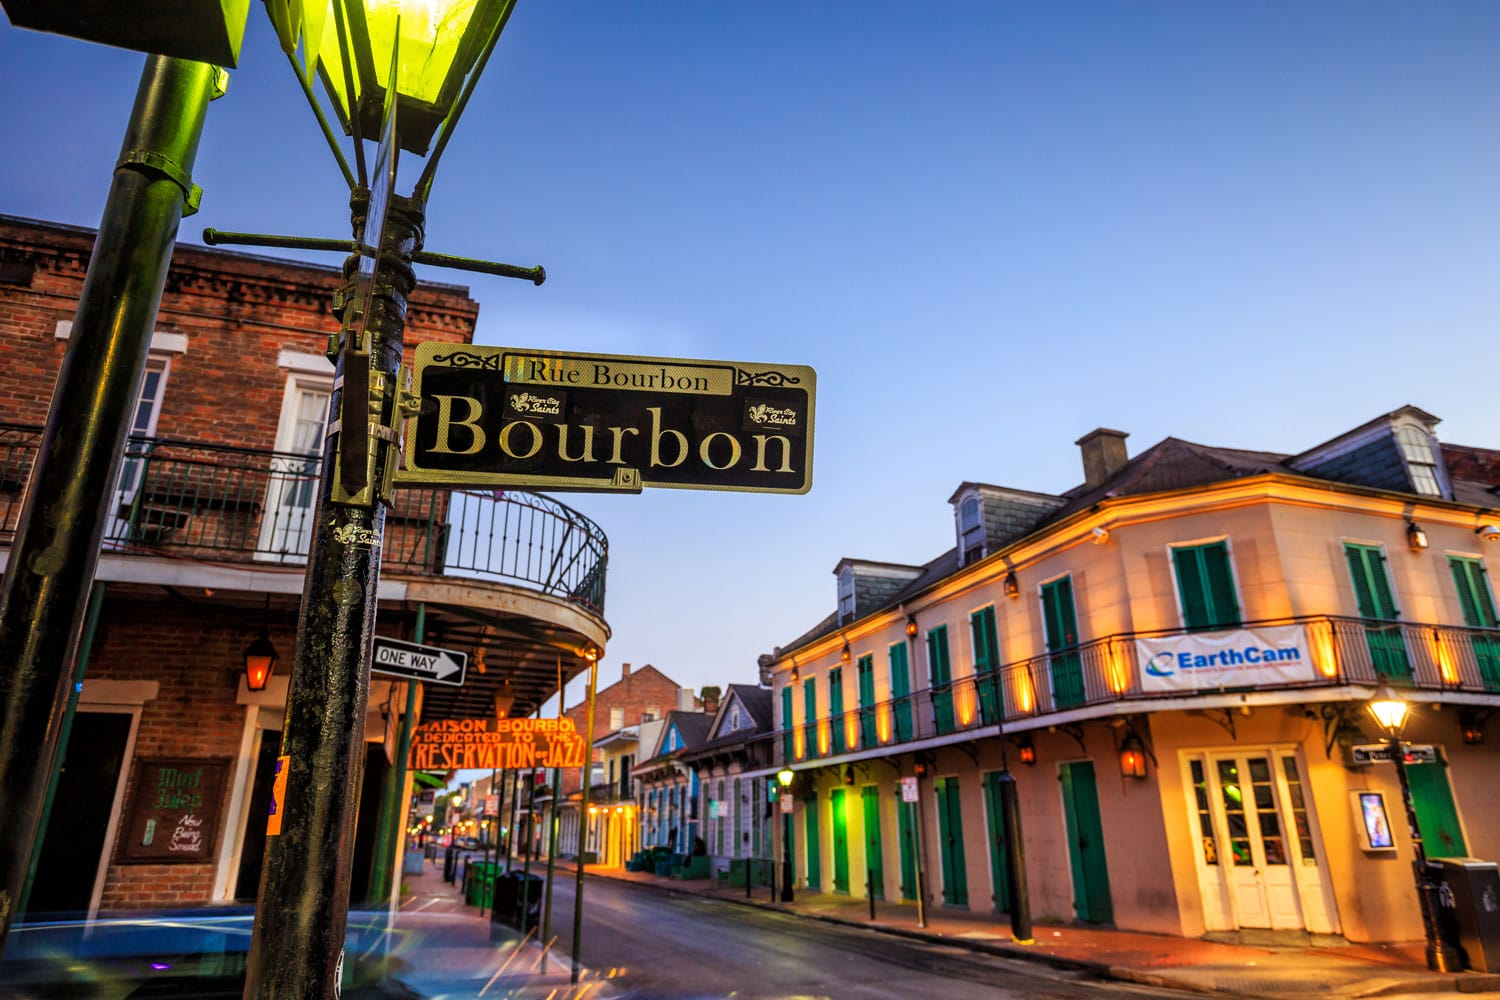 Bourbon Street in the French Quarter, New Orleans